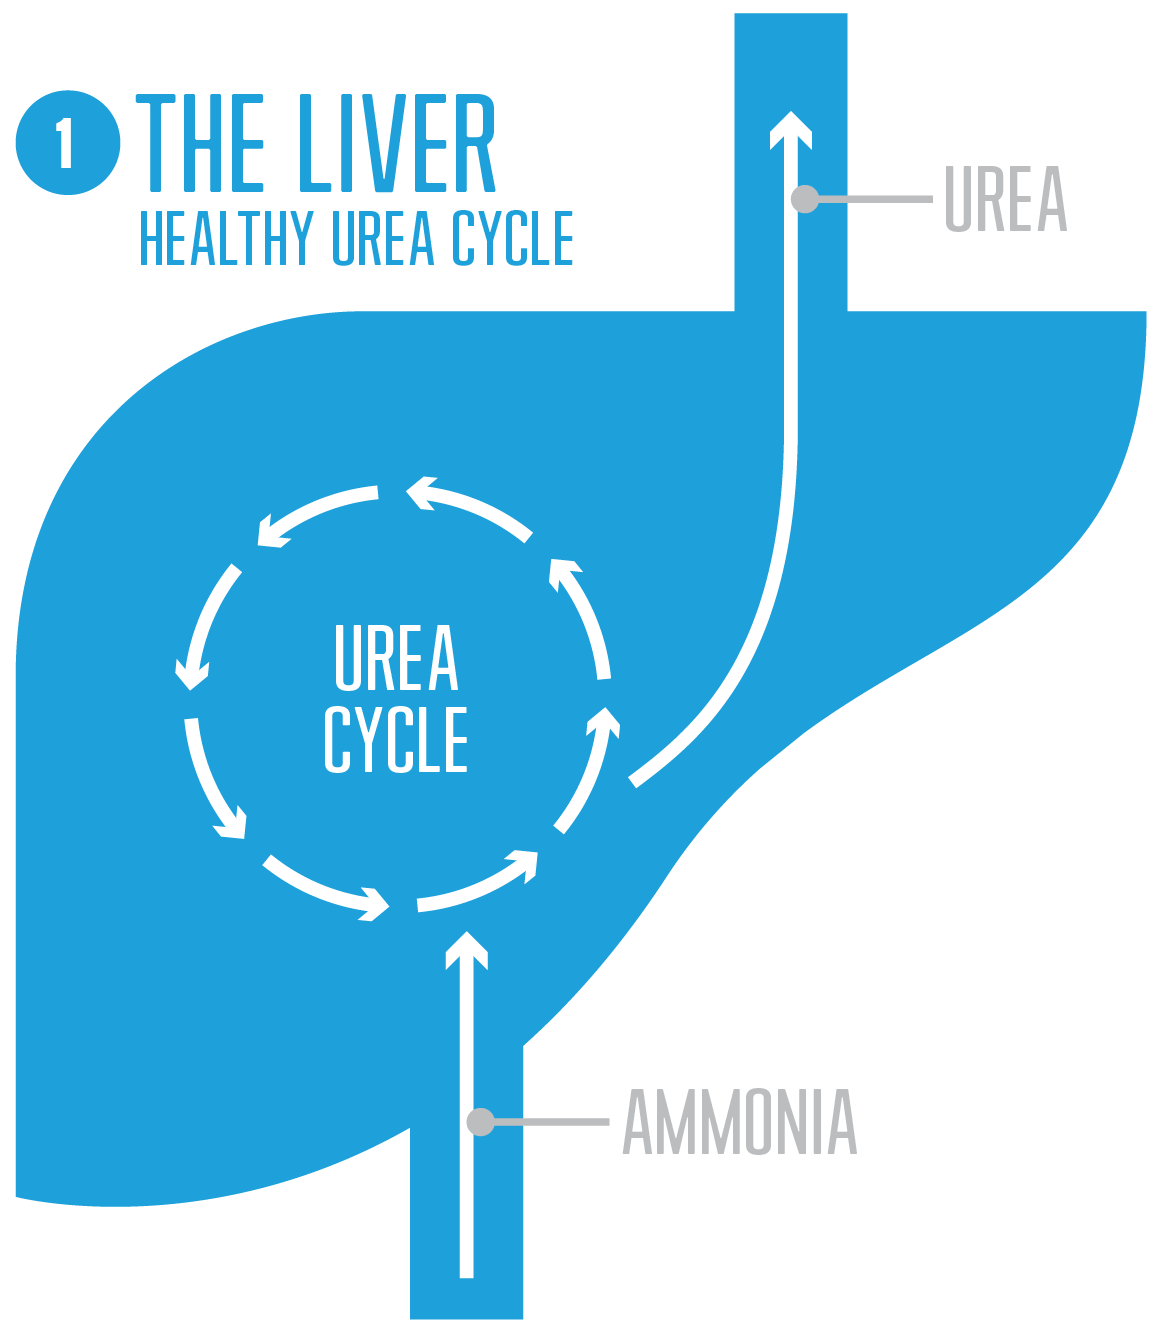 Healthy urea cycle diagram with normal serum ammonia levels and urea production